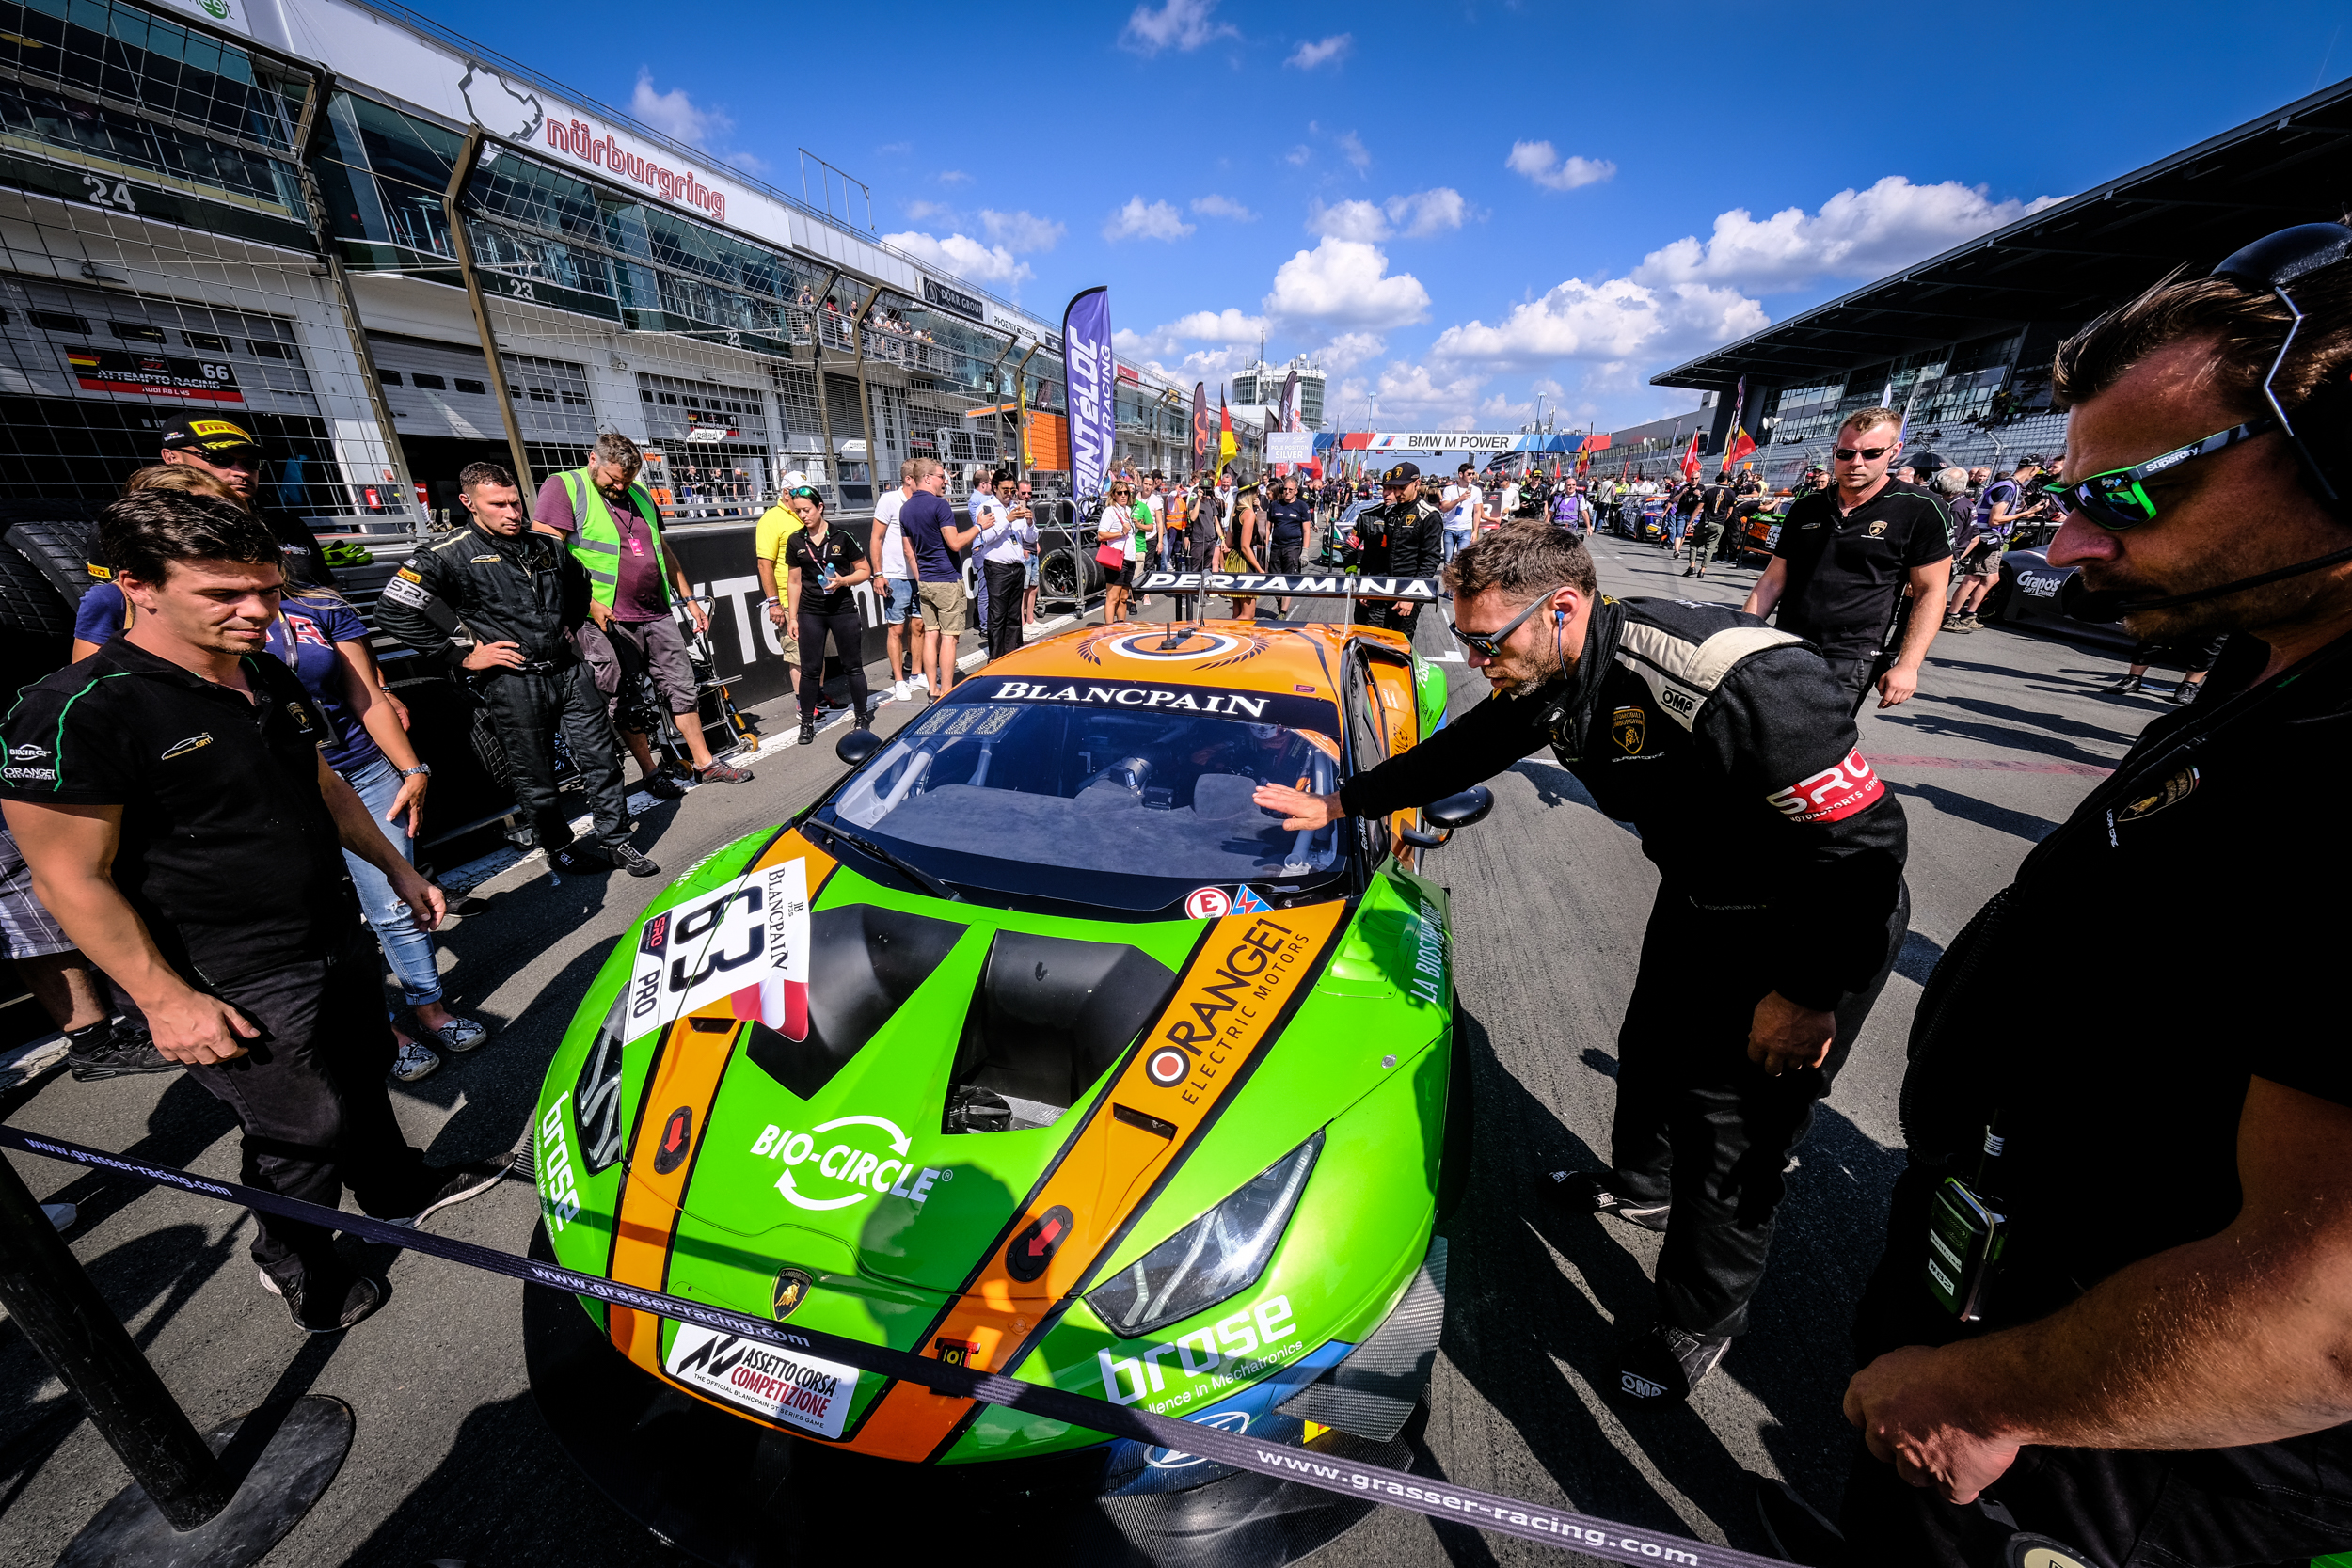 Podium number three for GRT Grasser Racing in the Blancpain GT World Challenge Europe